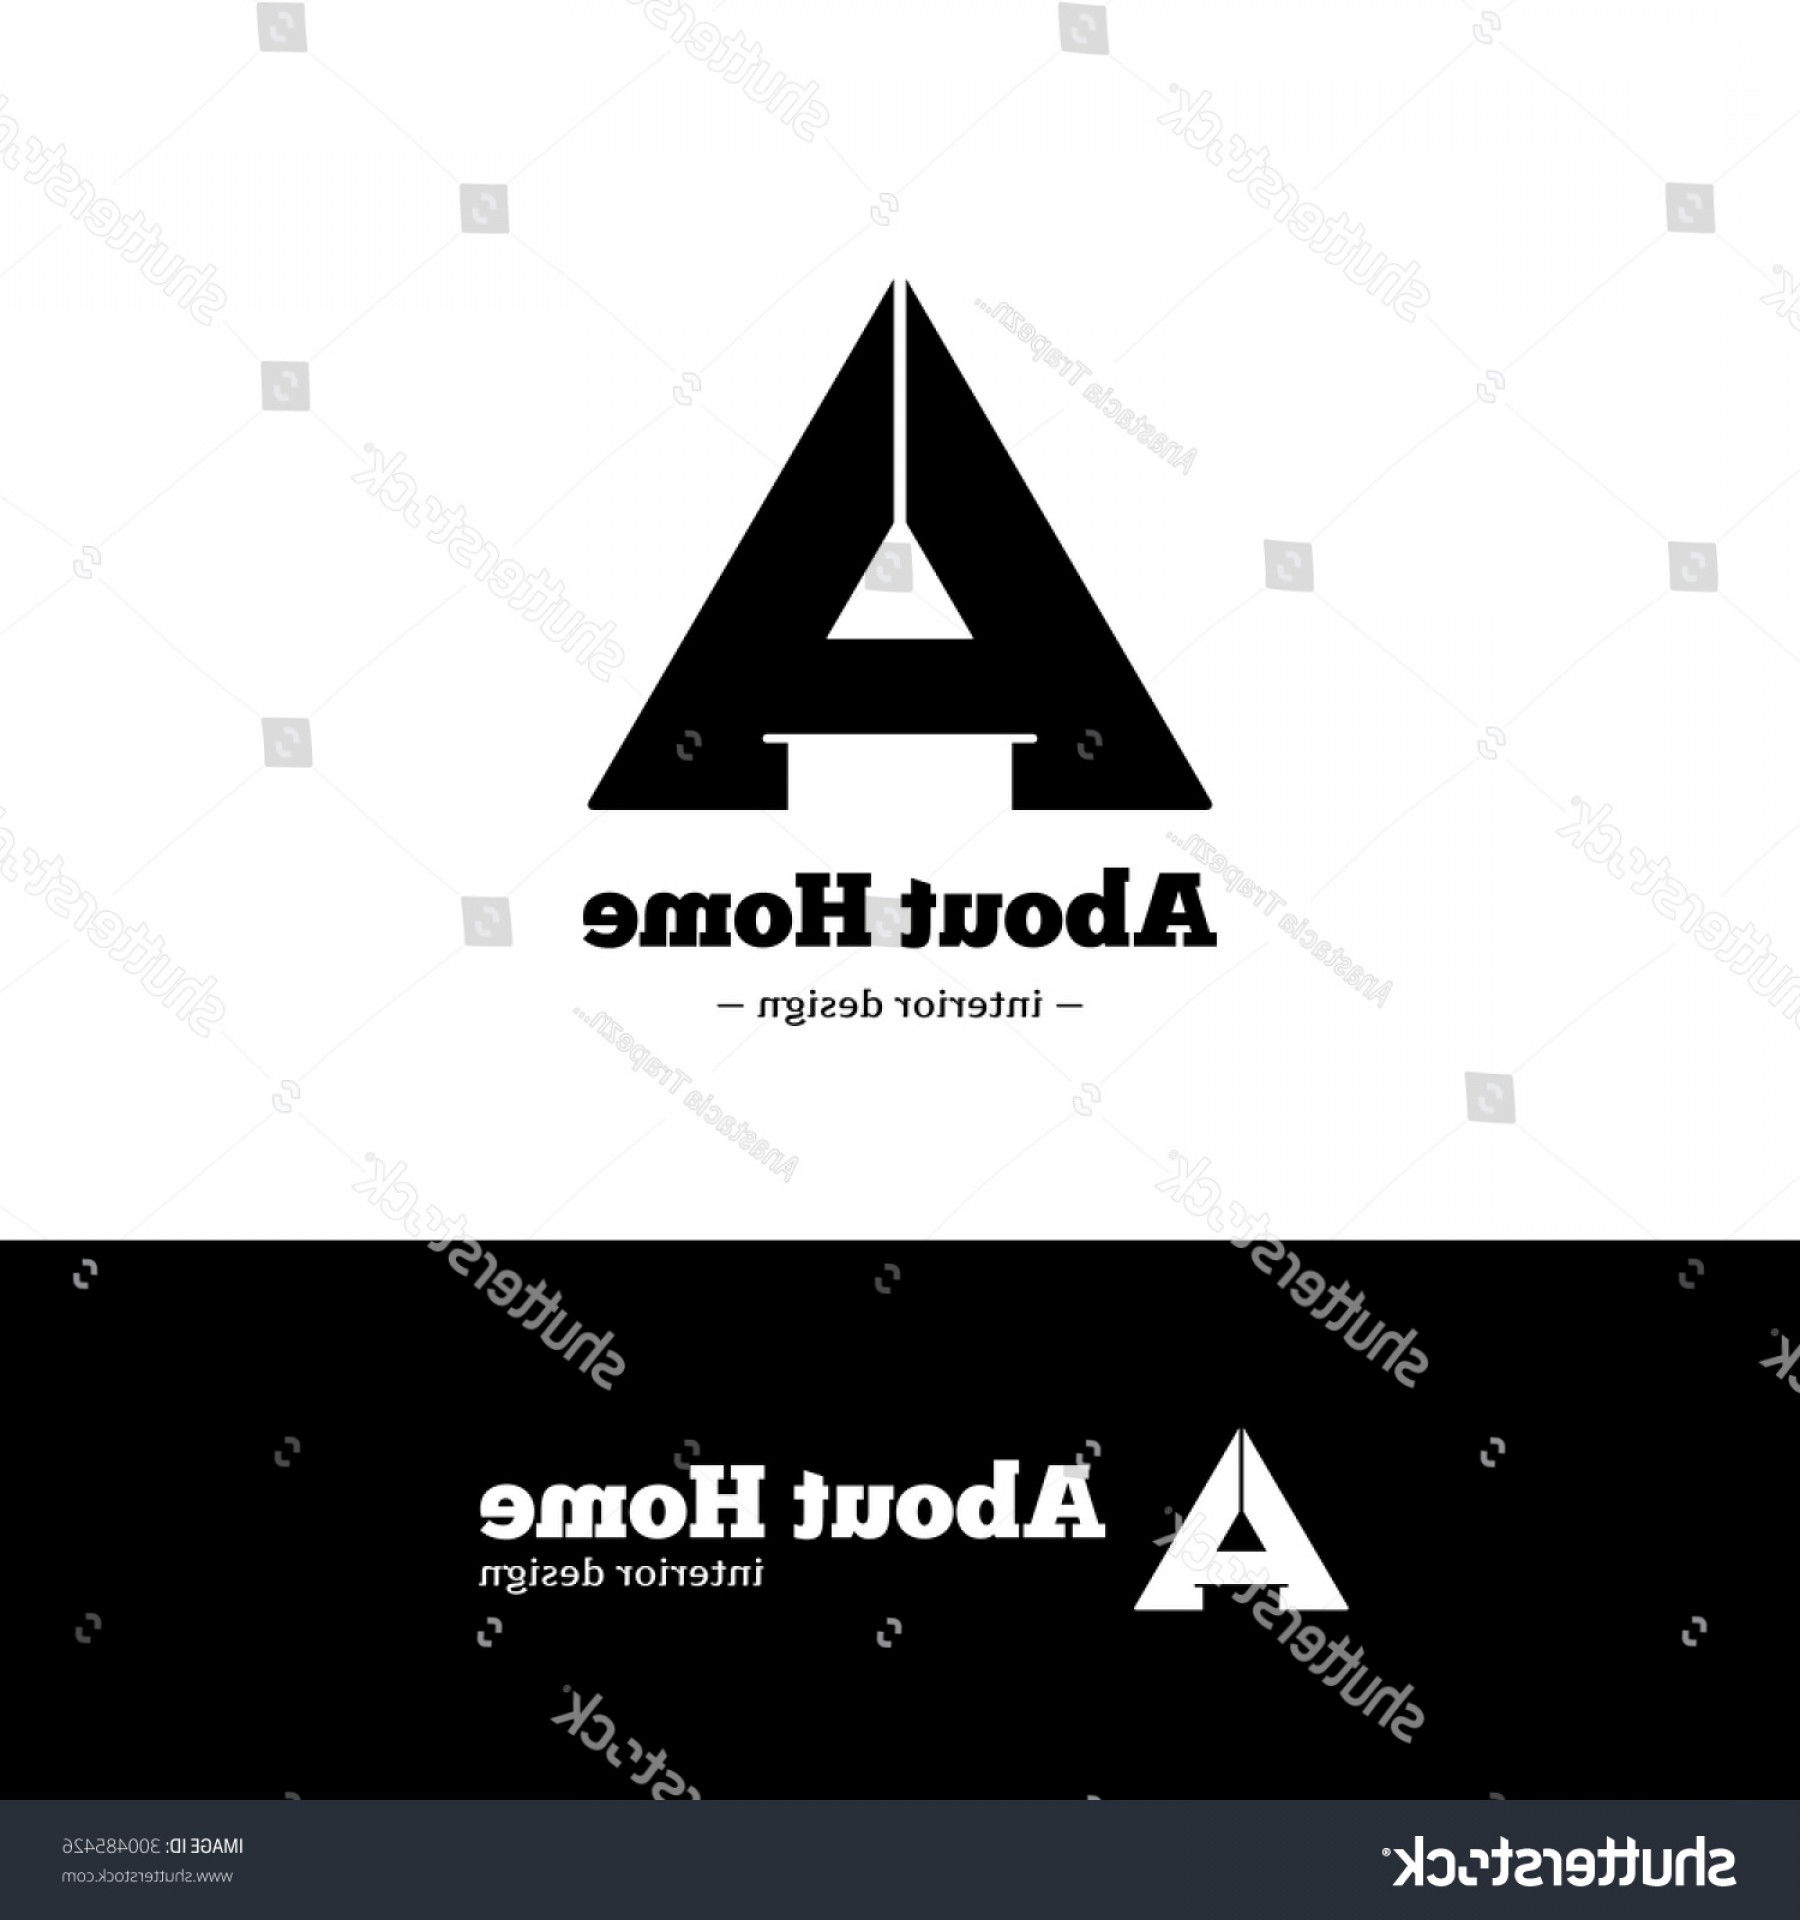 Black And White Negative Vector: Vector Trendy Black White Minimalistic Negative